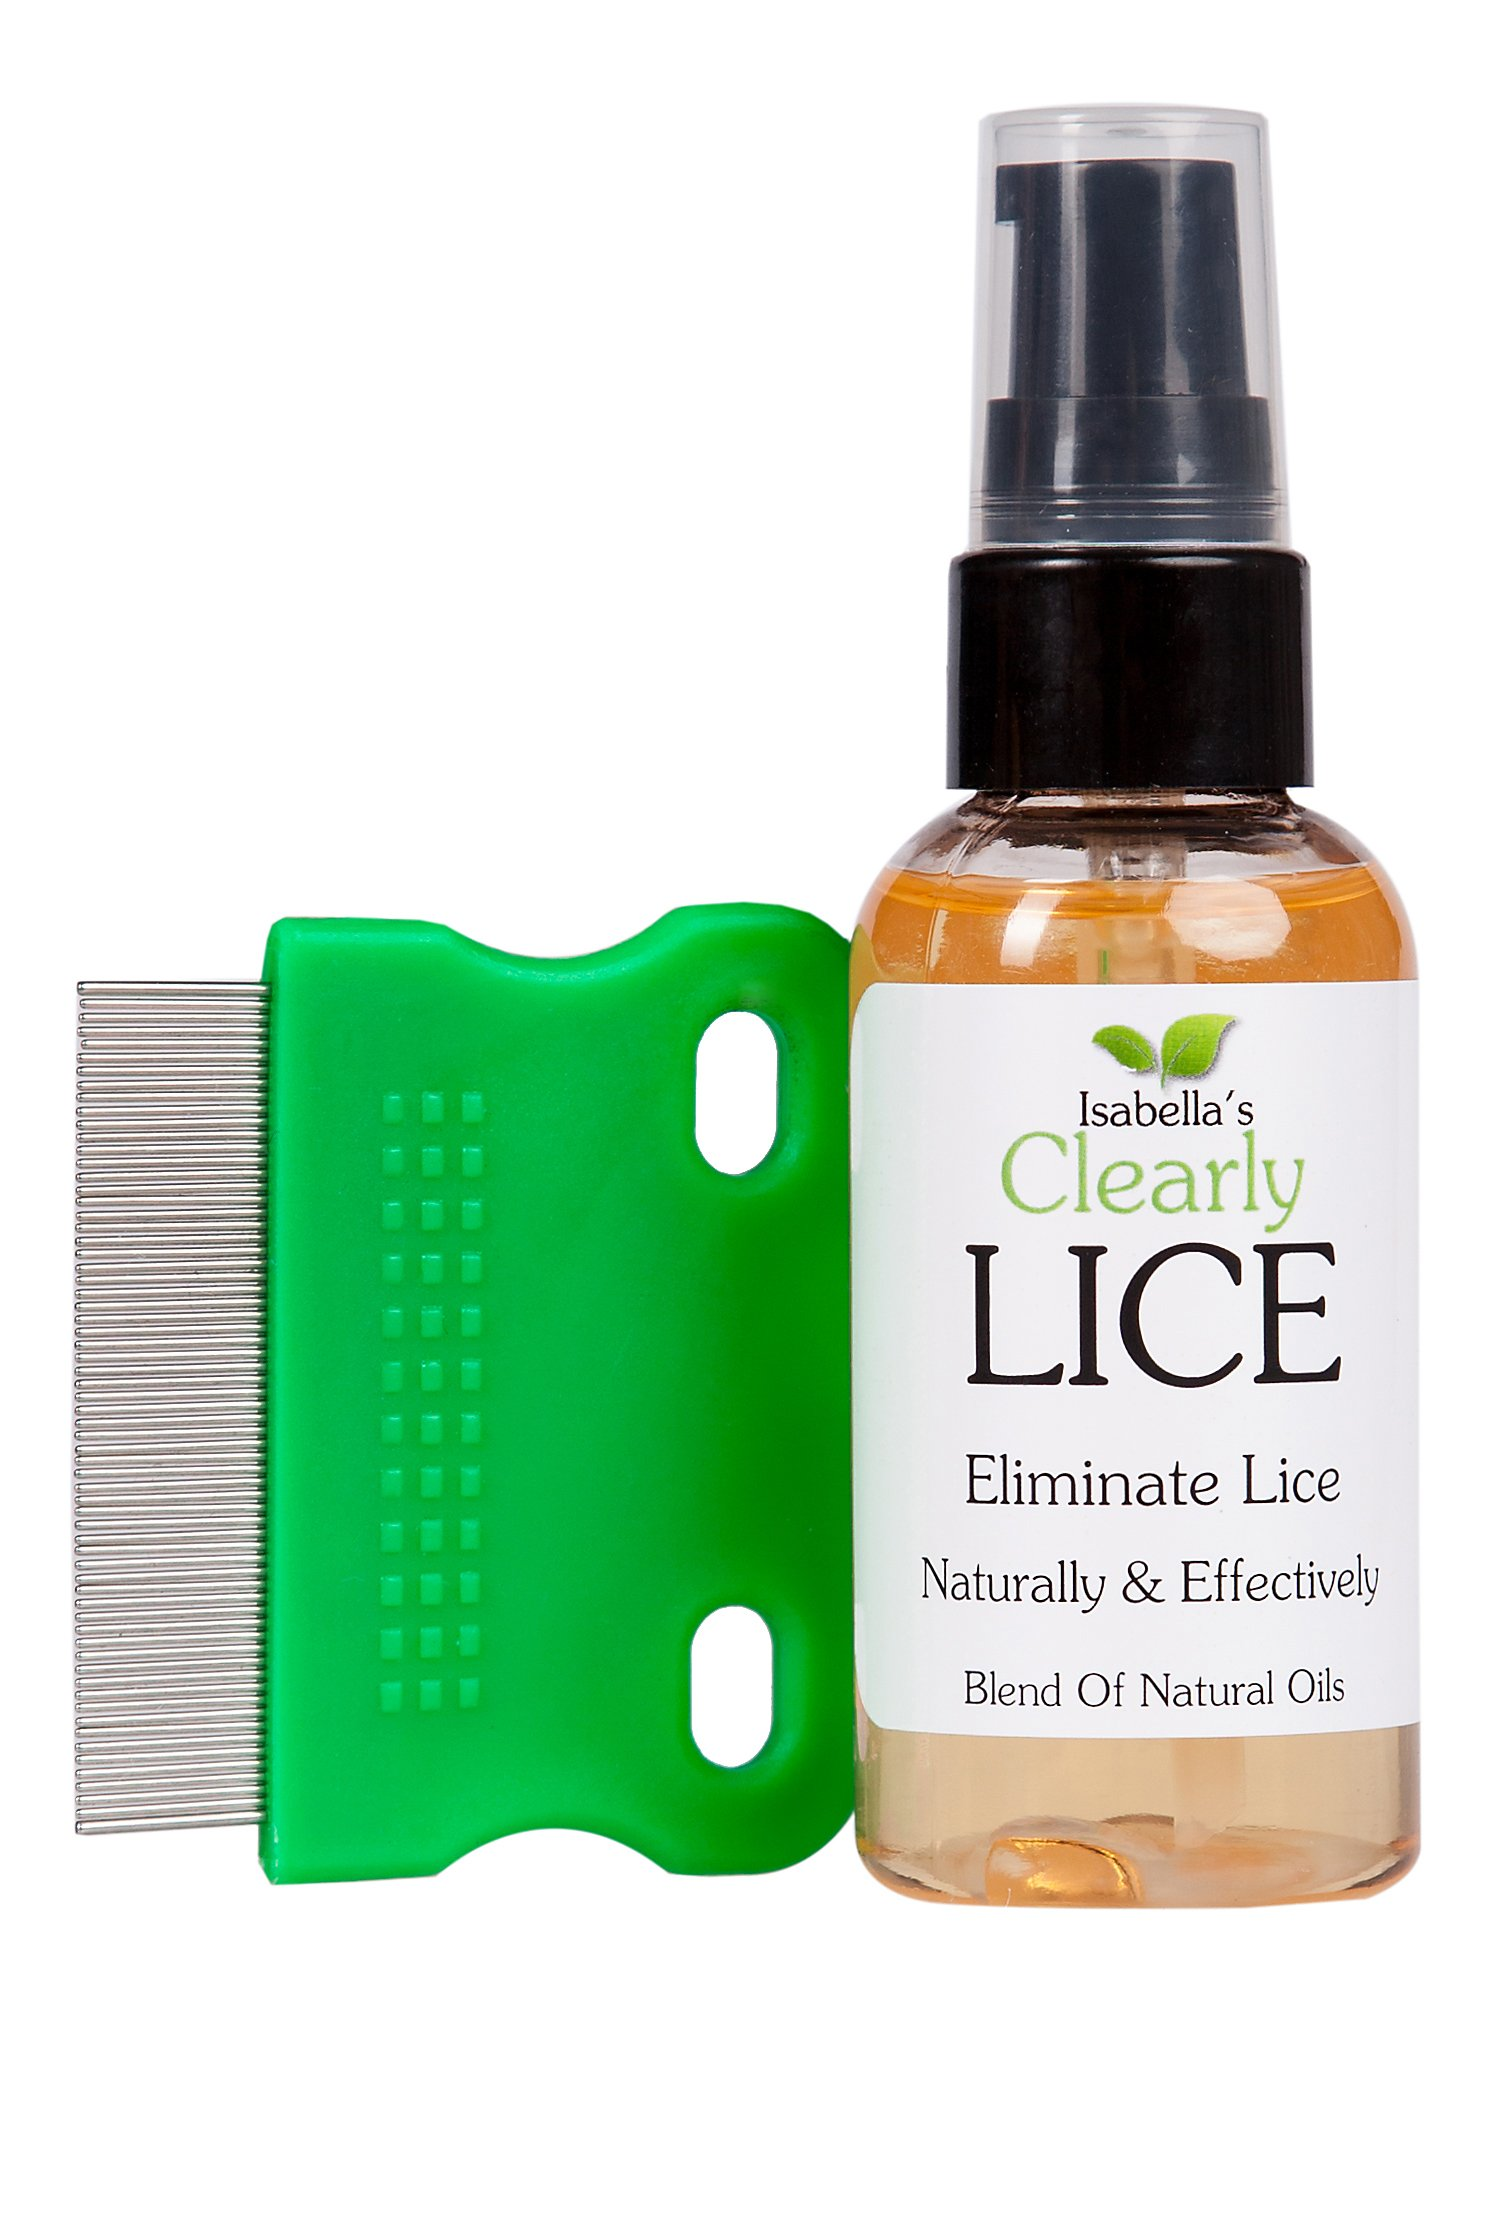 Isabella's Clearly LICE, Powerful Lice Treatment with Natural Oils Proven to Eliminate Lice and Nits. No Toxics or Harsh Chemicals. FREE Metal Lice Comb. Safe for Kids & Adults. 2 Oz